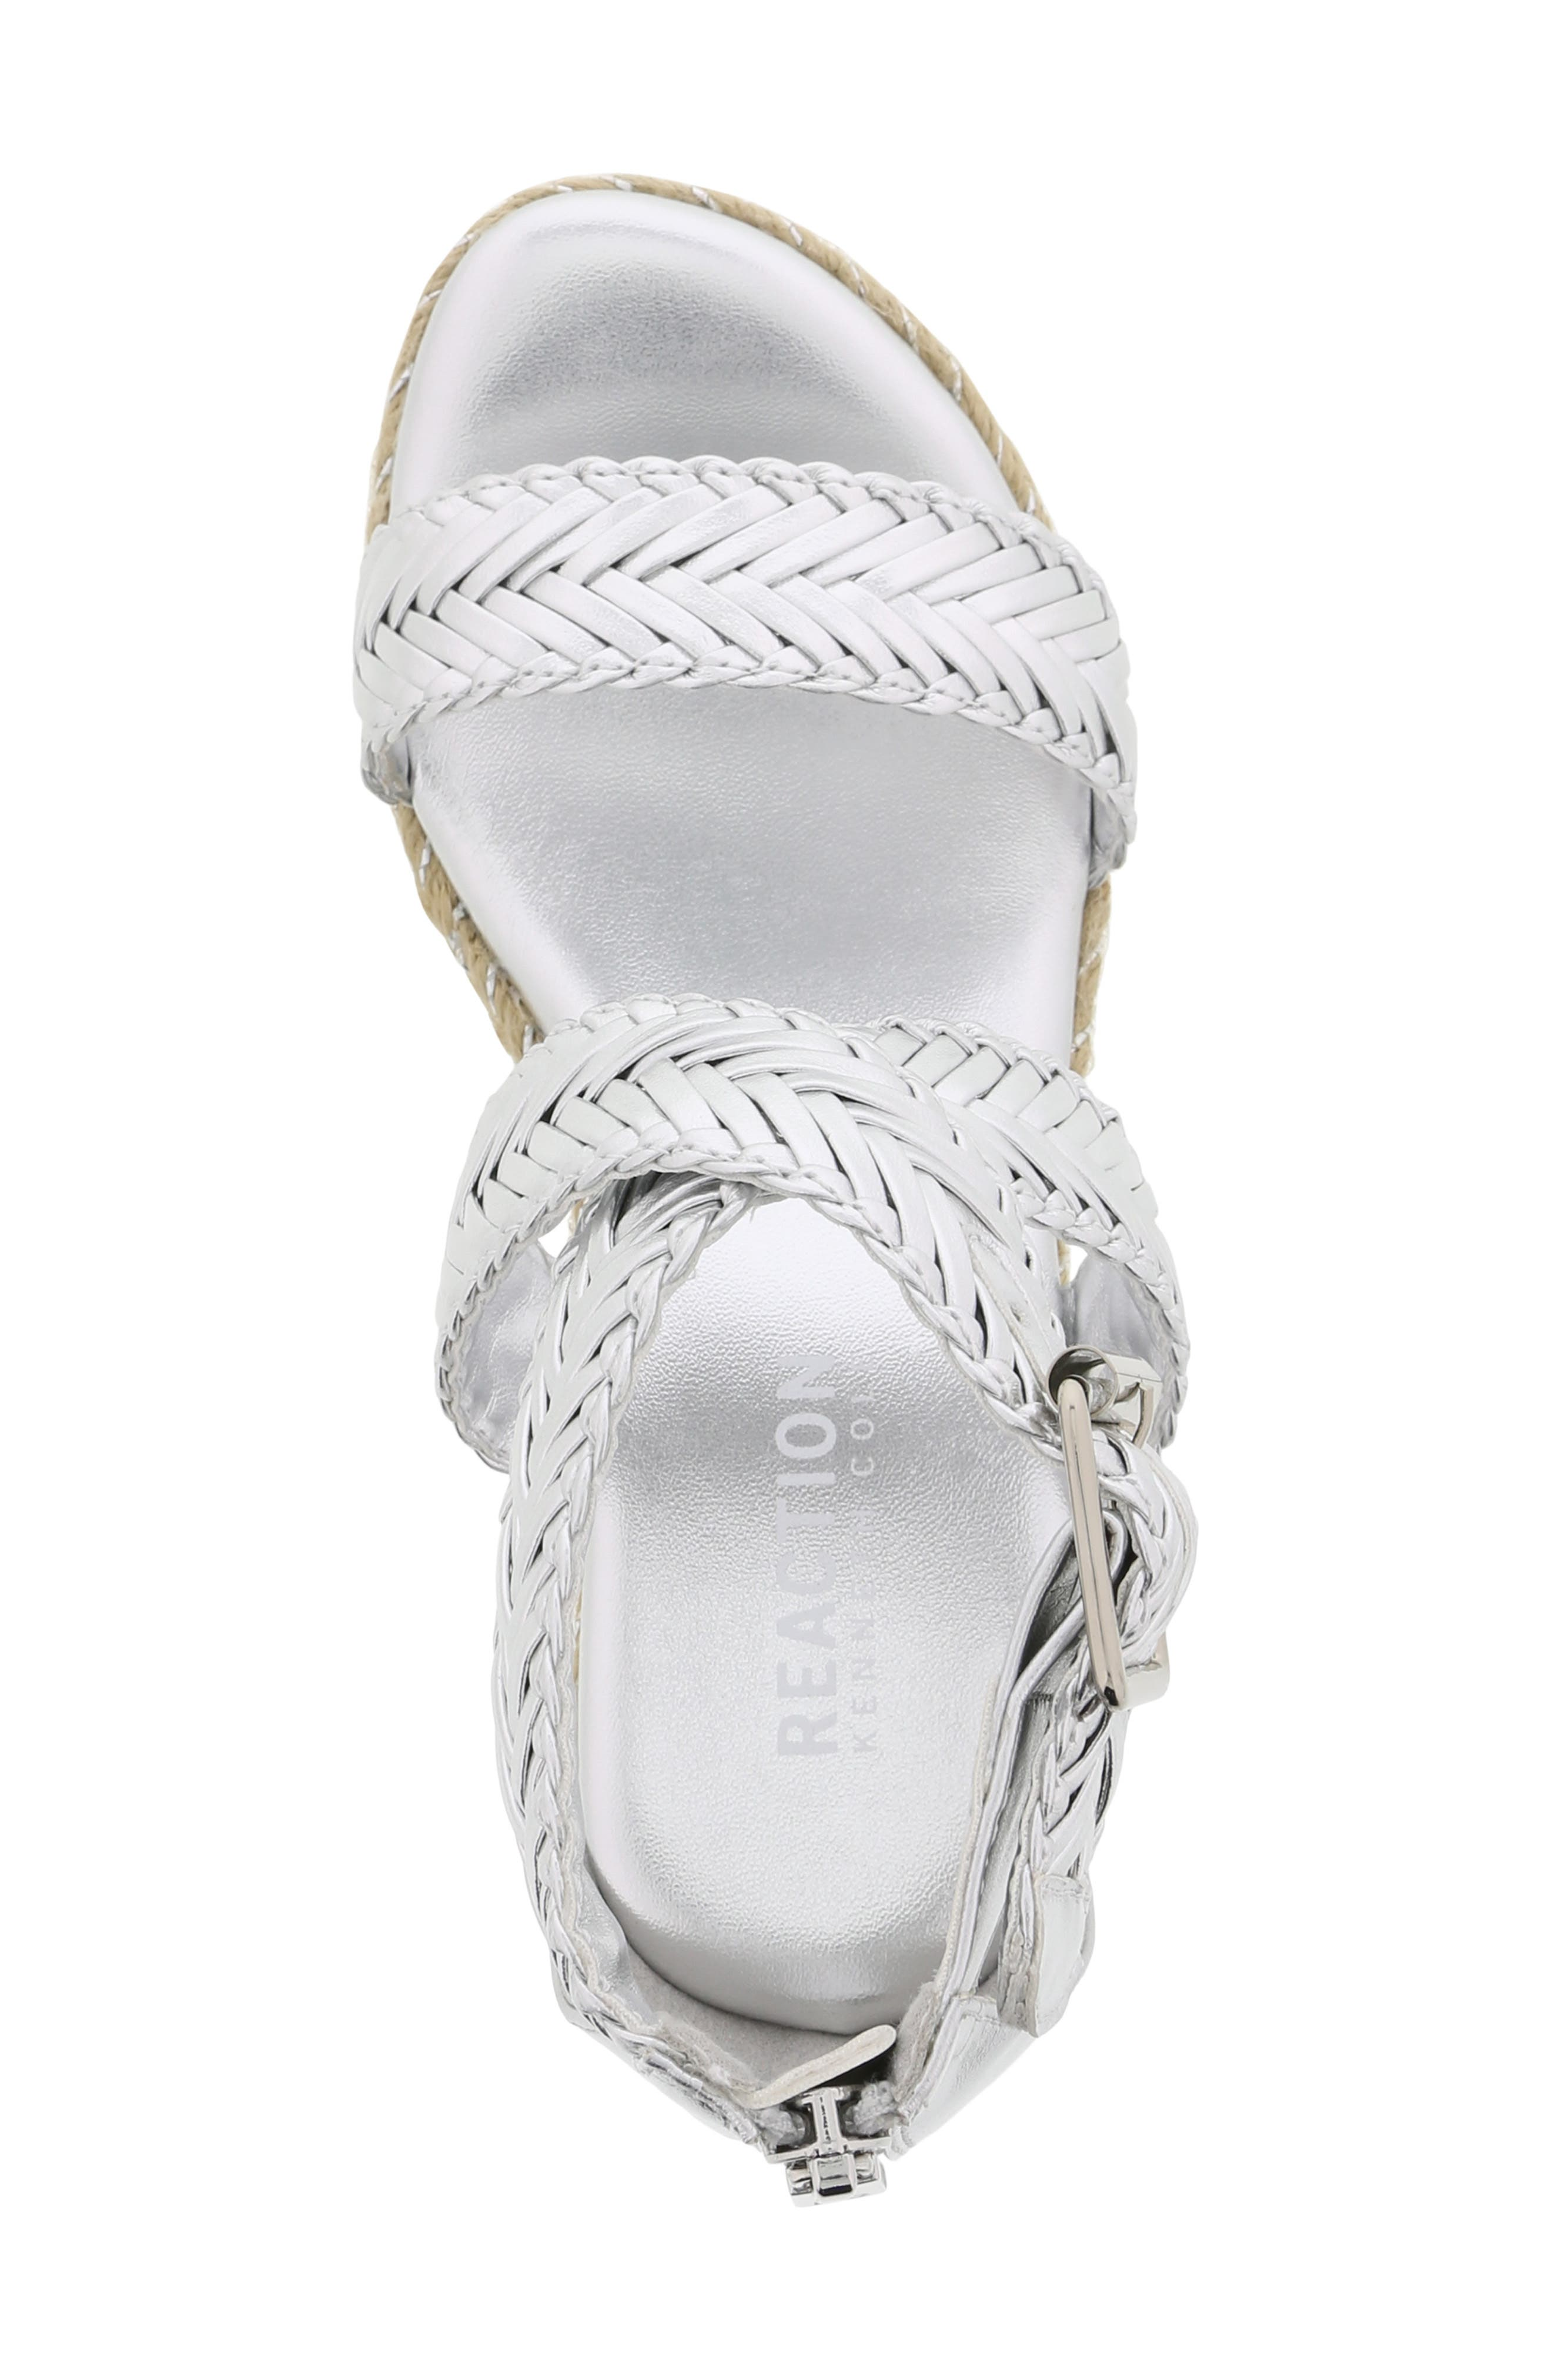 REACTION KENNETH COLE, Reed Sway Metallic Wedge Sandal, Alternate thumbnail 5, color, SILVER